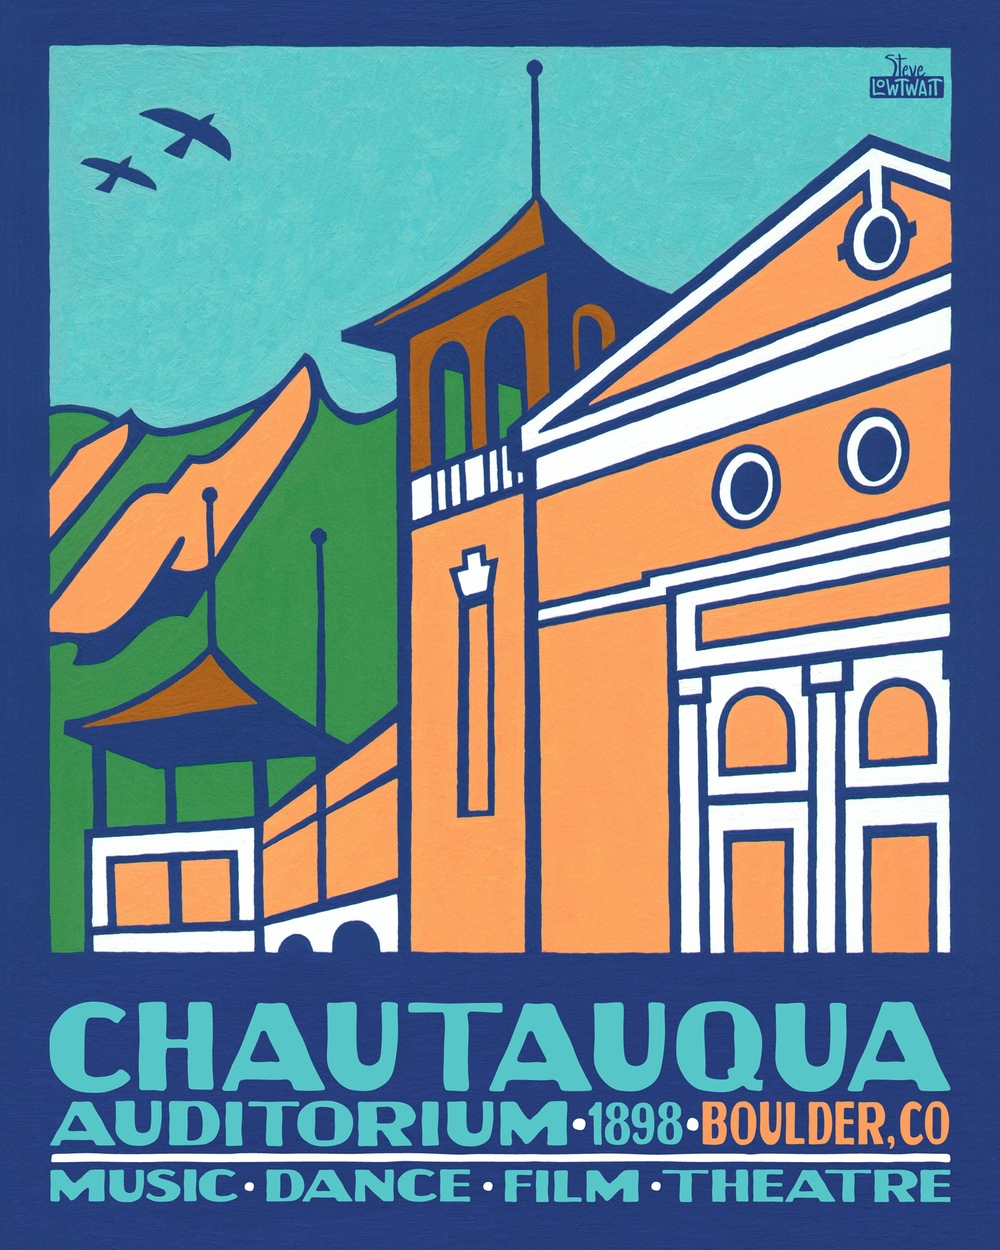 Chautauqua Auditorium, Boulder • Buy